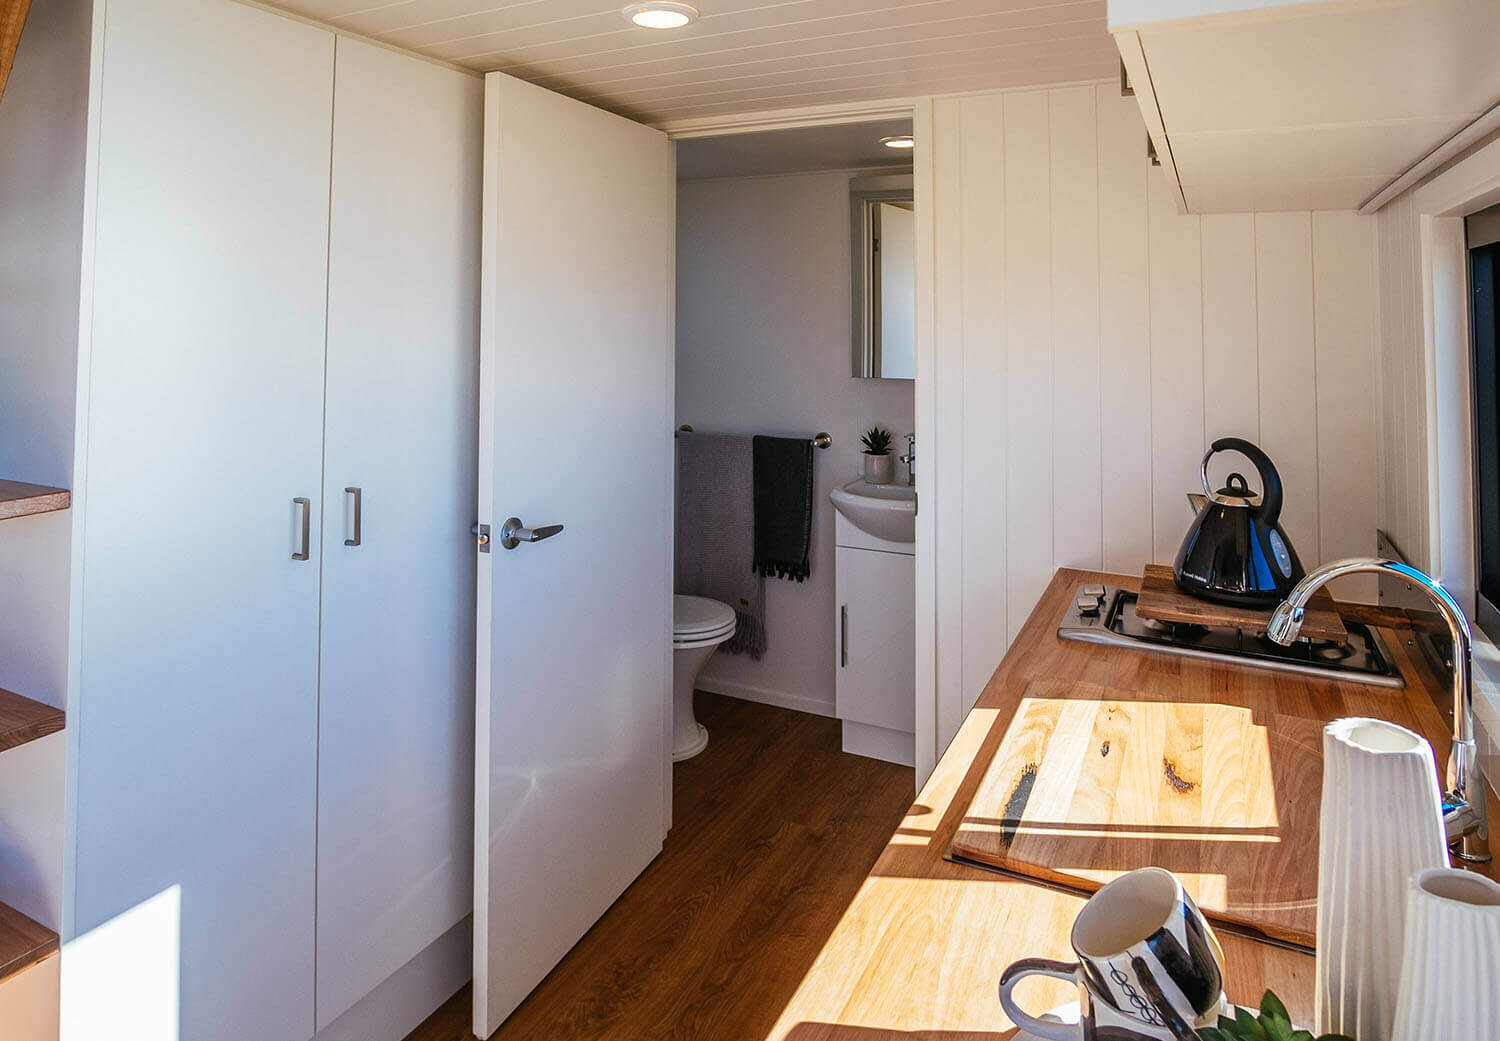 4800sl_0007_Tiny Home - Independent Series 4800 Kitchen Bathroom